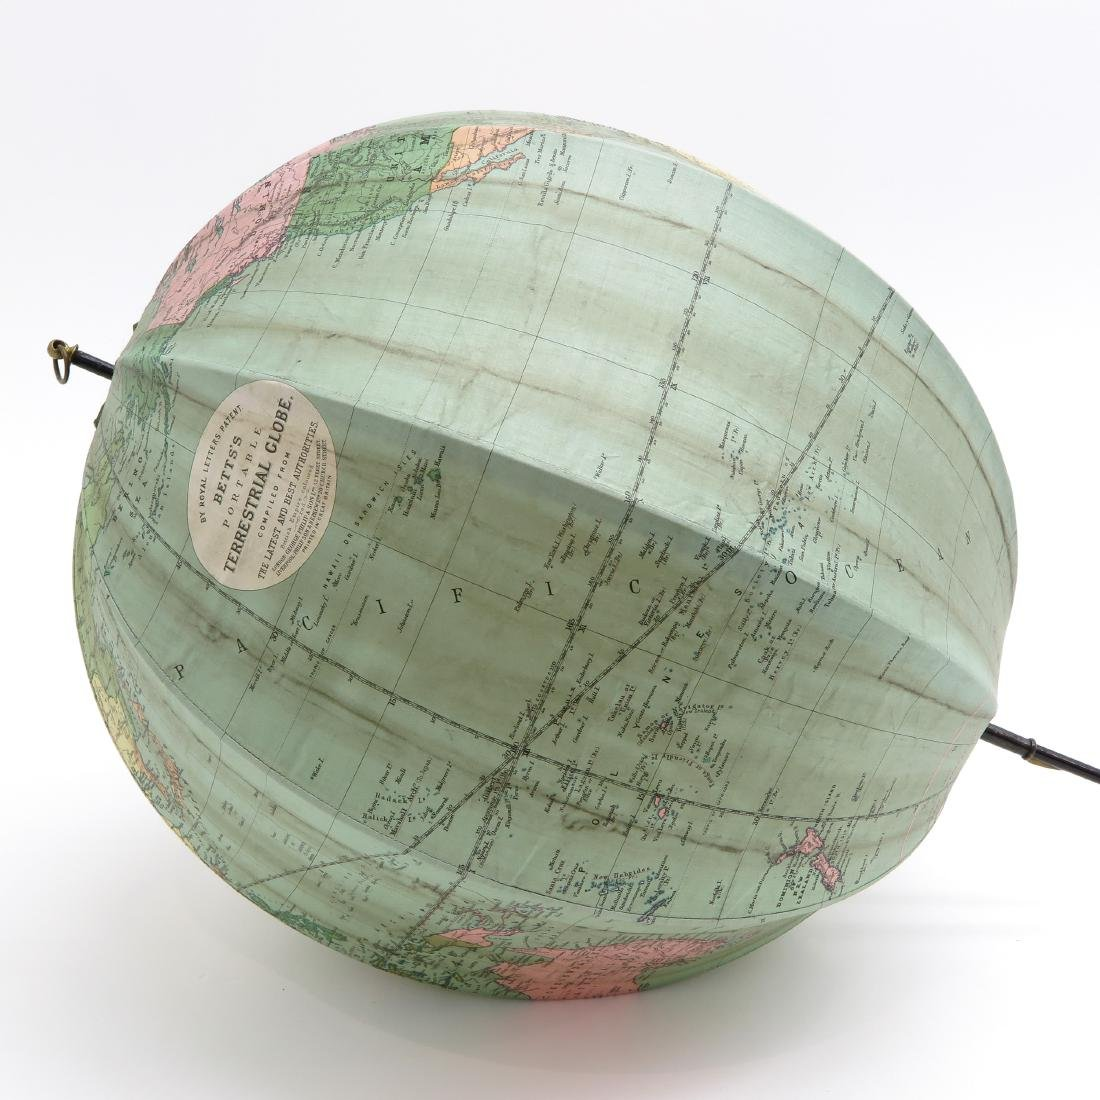 A Bett's Portable Terrestrial Globe with Box 1925 - 2